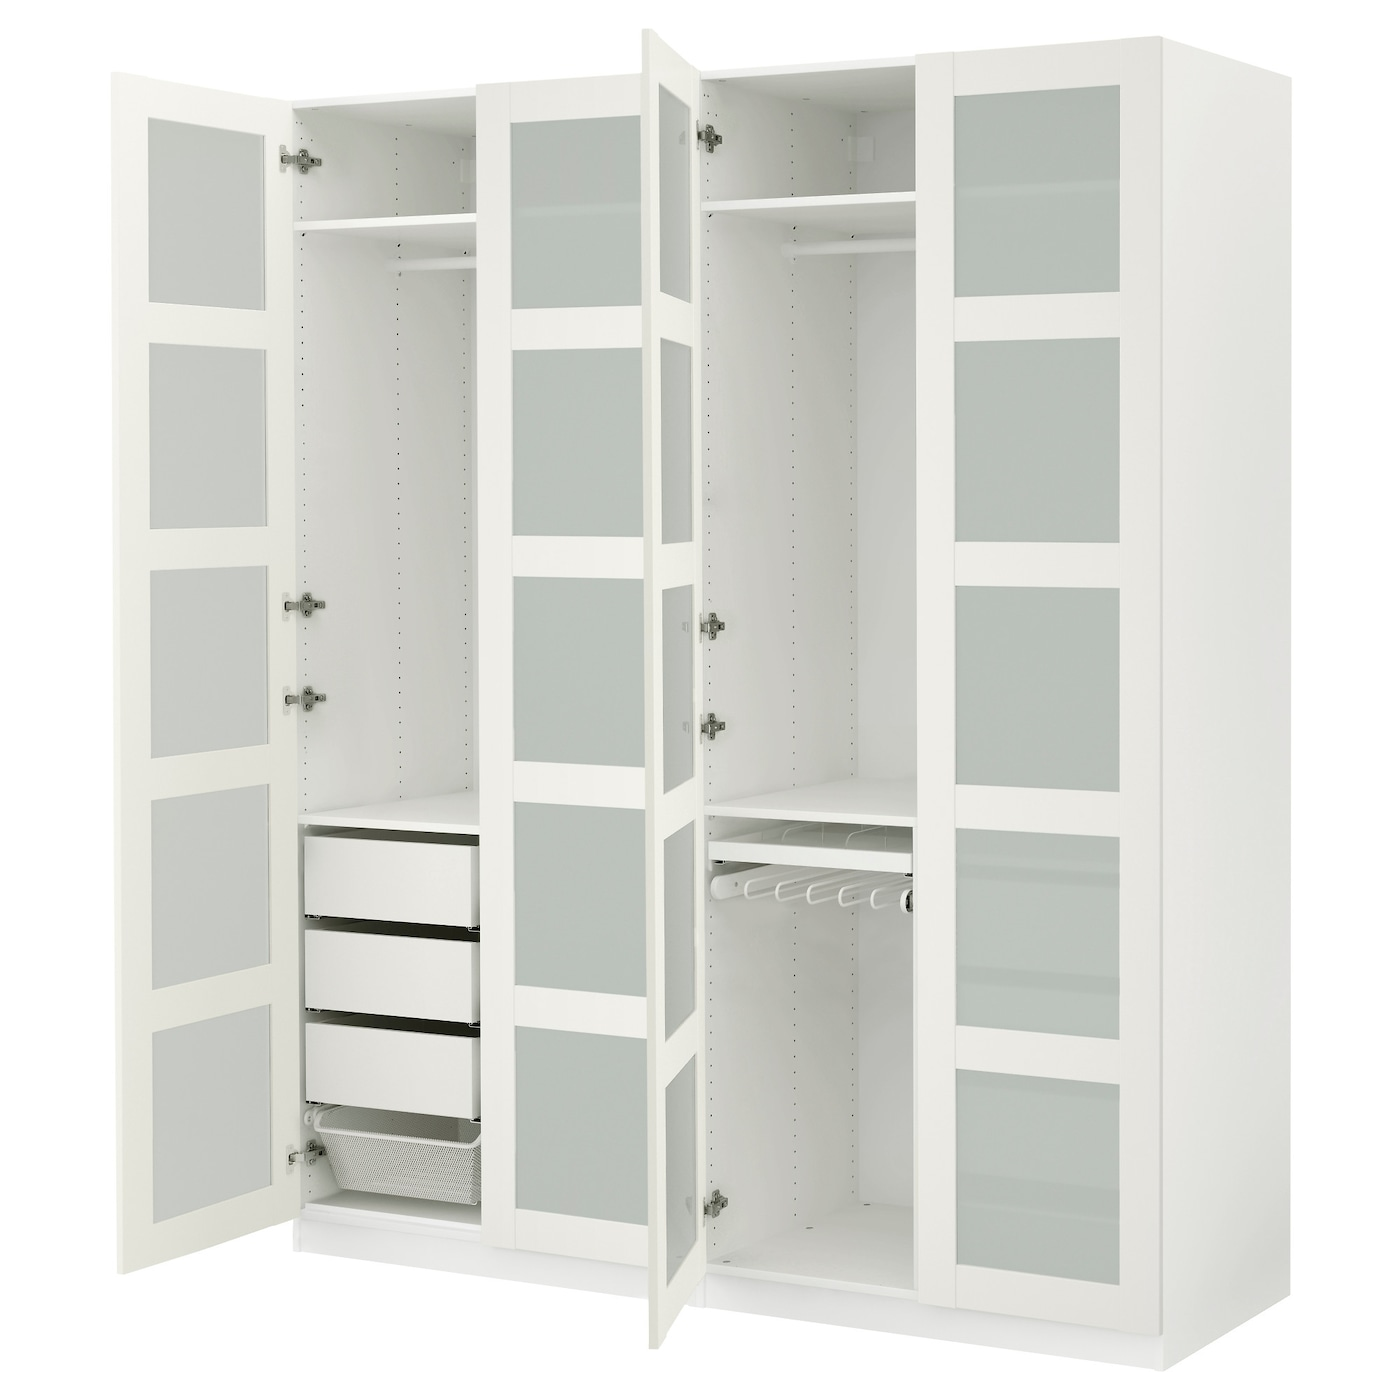 Pax wardrobes design your own wardrobe at ikea - Armoire ikea porte coulissante miroir ...